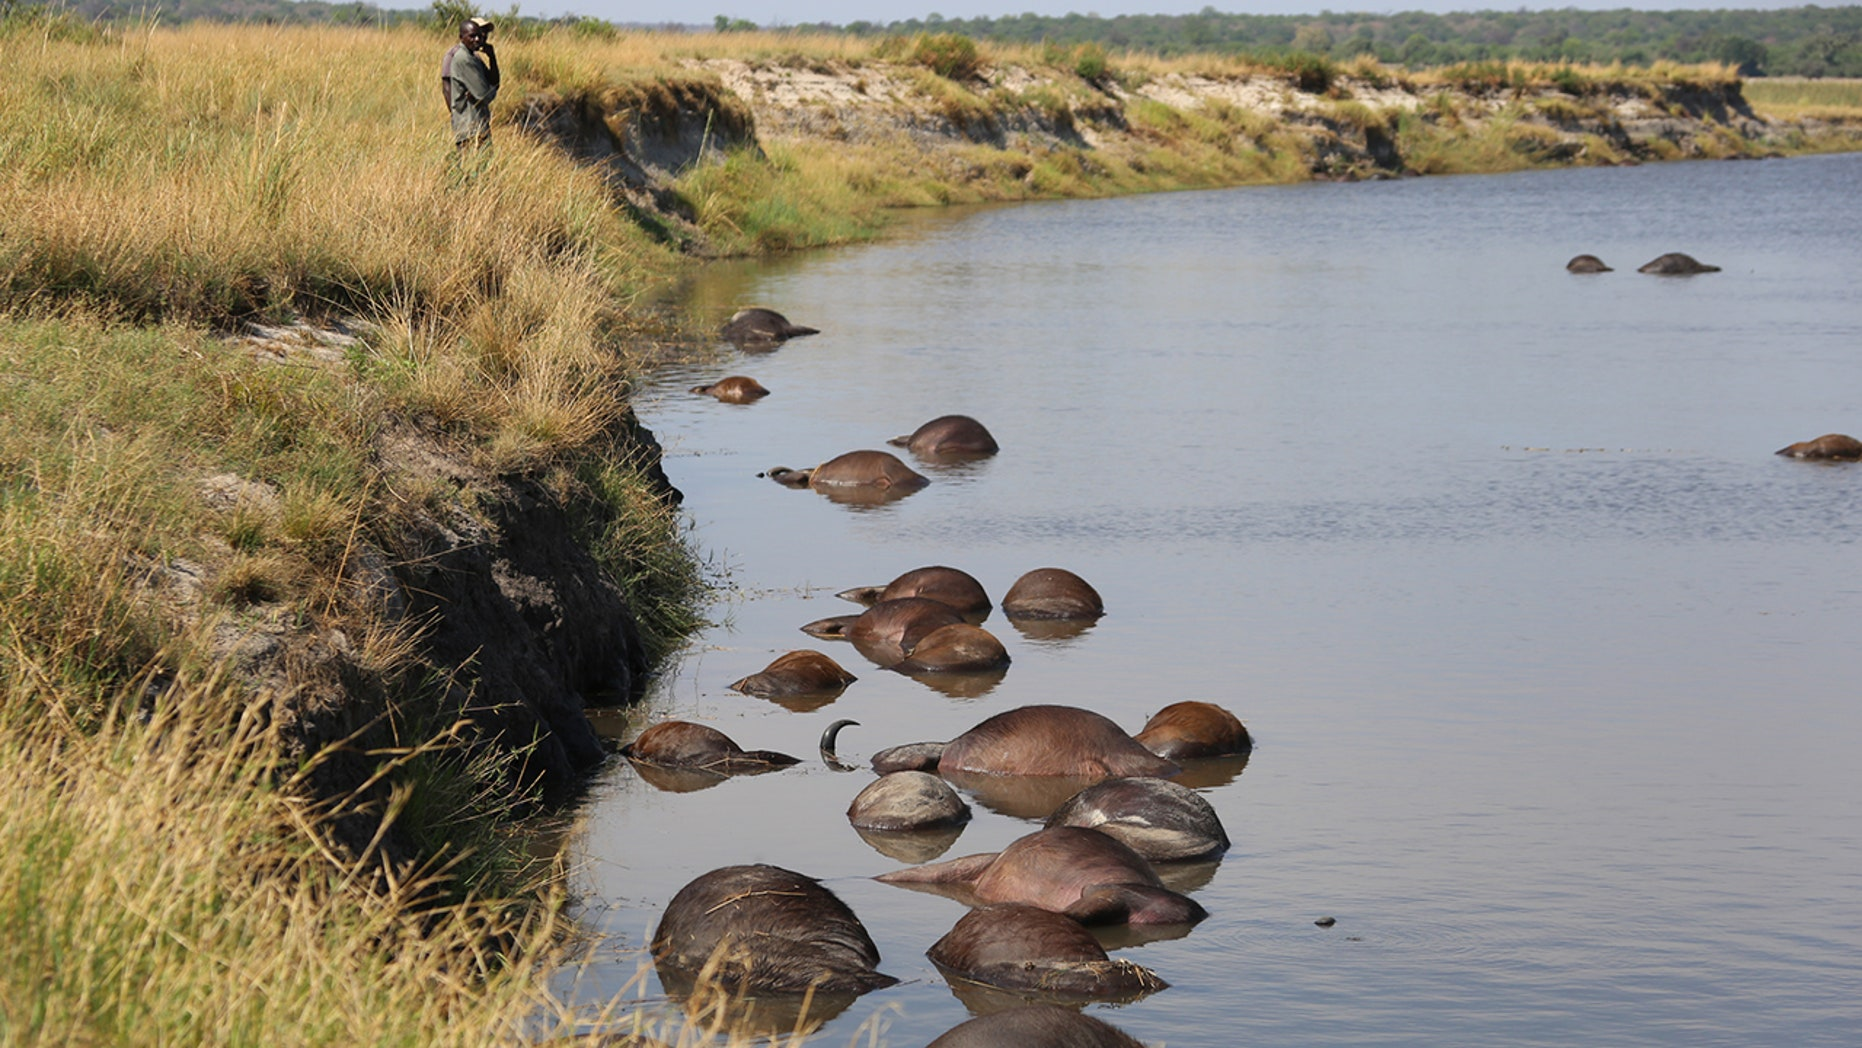 Hundreds of buffaloes drowned in the river Chobe after being persecuted by a lion's pride. (Serondela Lodge)